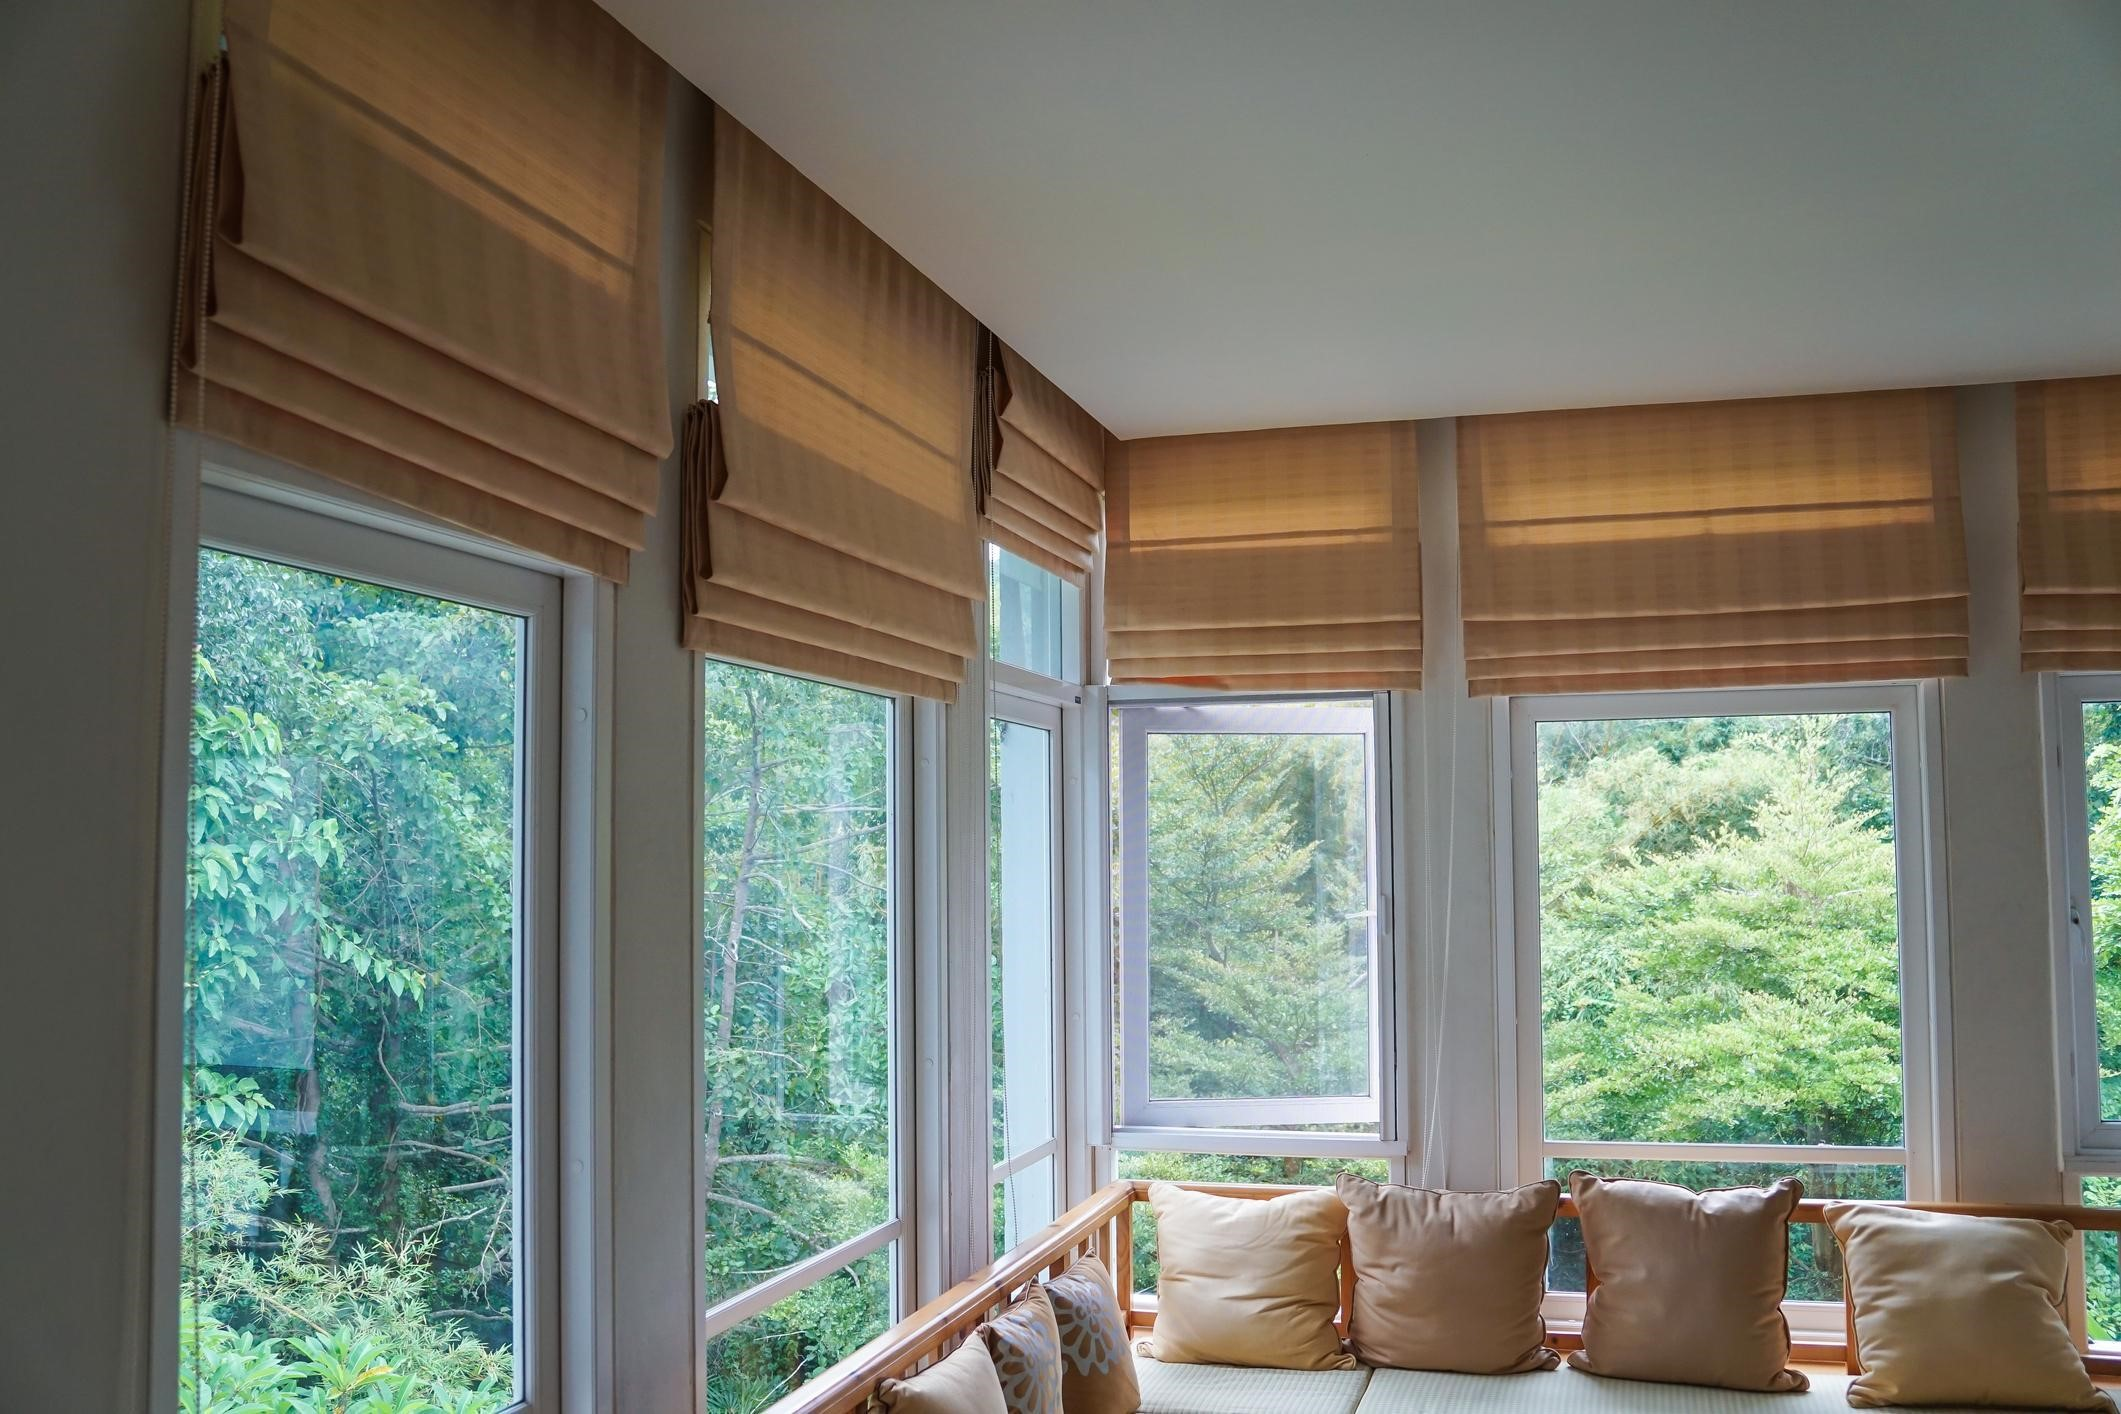 image - Best Window Treatments for Residential Rooms